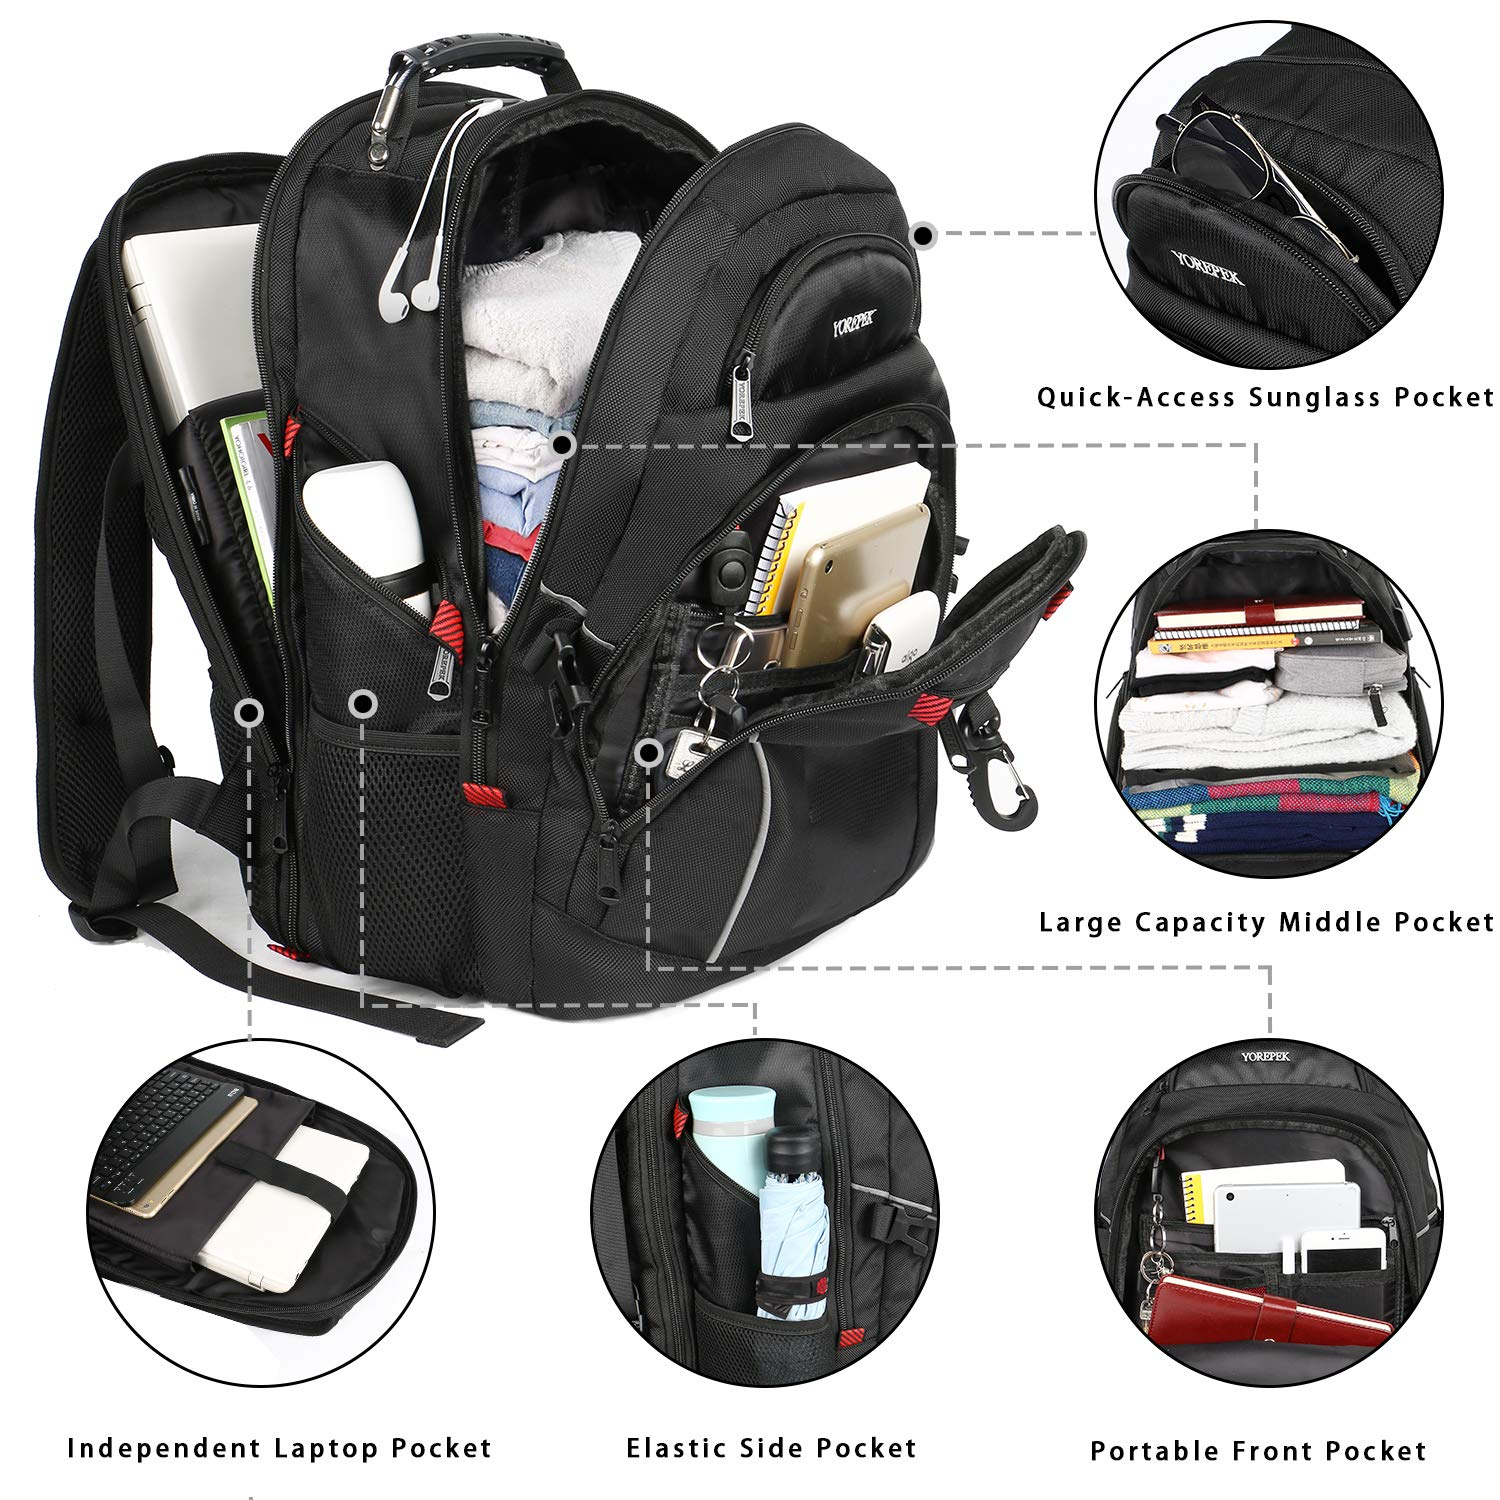 Travel Backpack for Men,TSA Laptop Backpacks with USB Charging Port,Extra Large Backpack with Luggage Sleeve, Water Resistant College School Bookbag Computer Bag Fits 17 inch Laptops,Black by YOREPEK (Image #3)